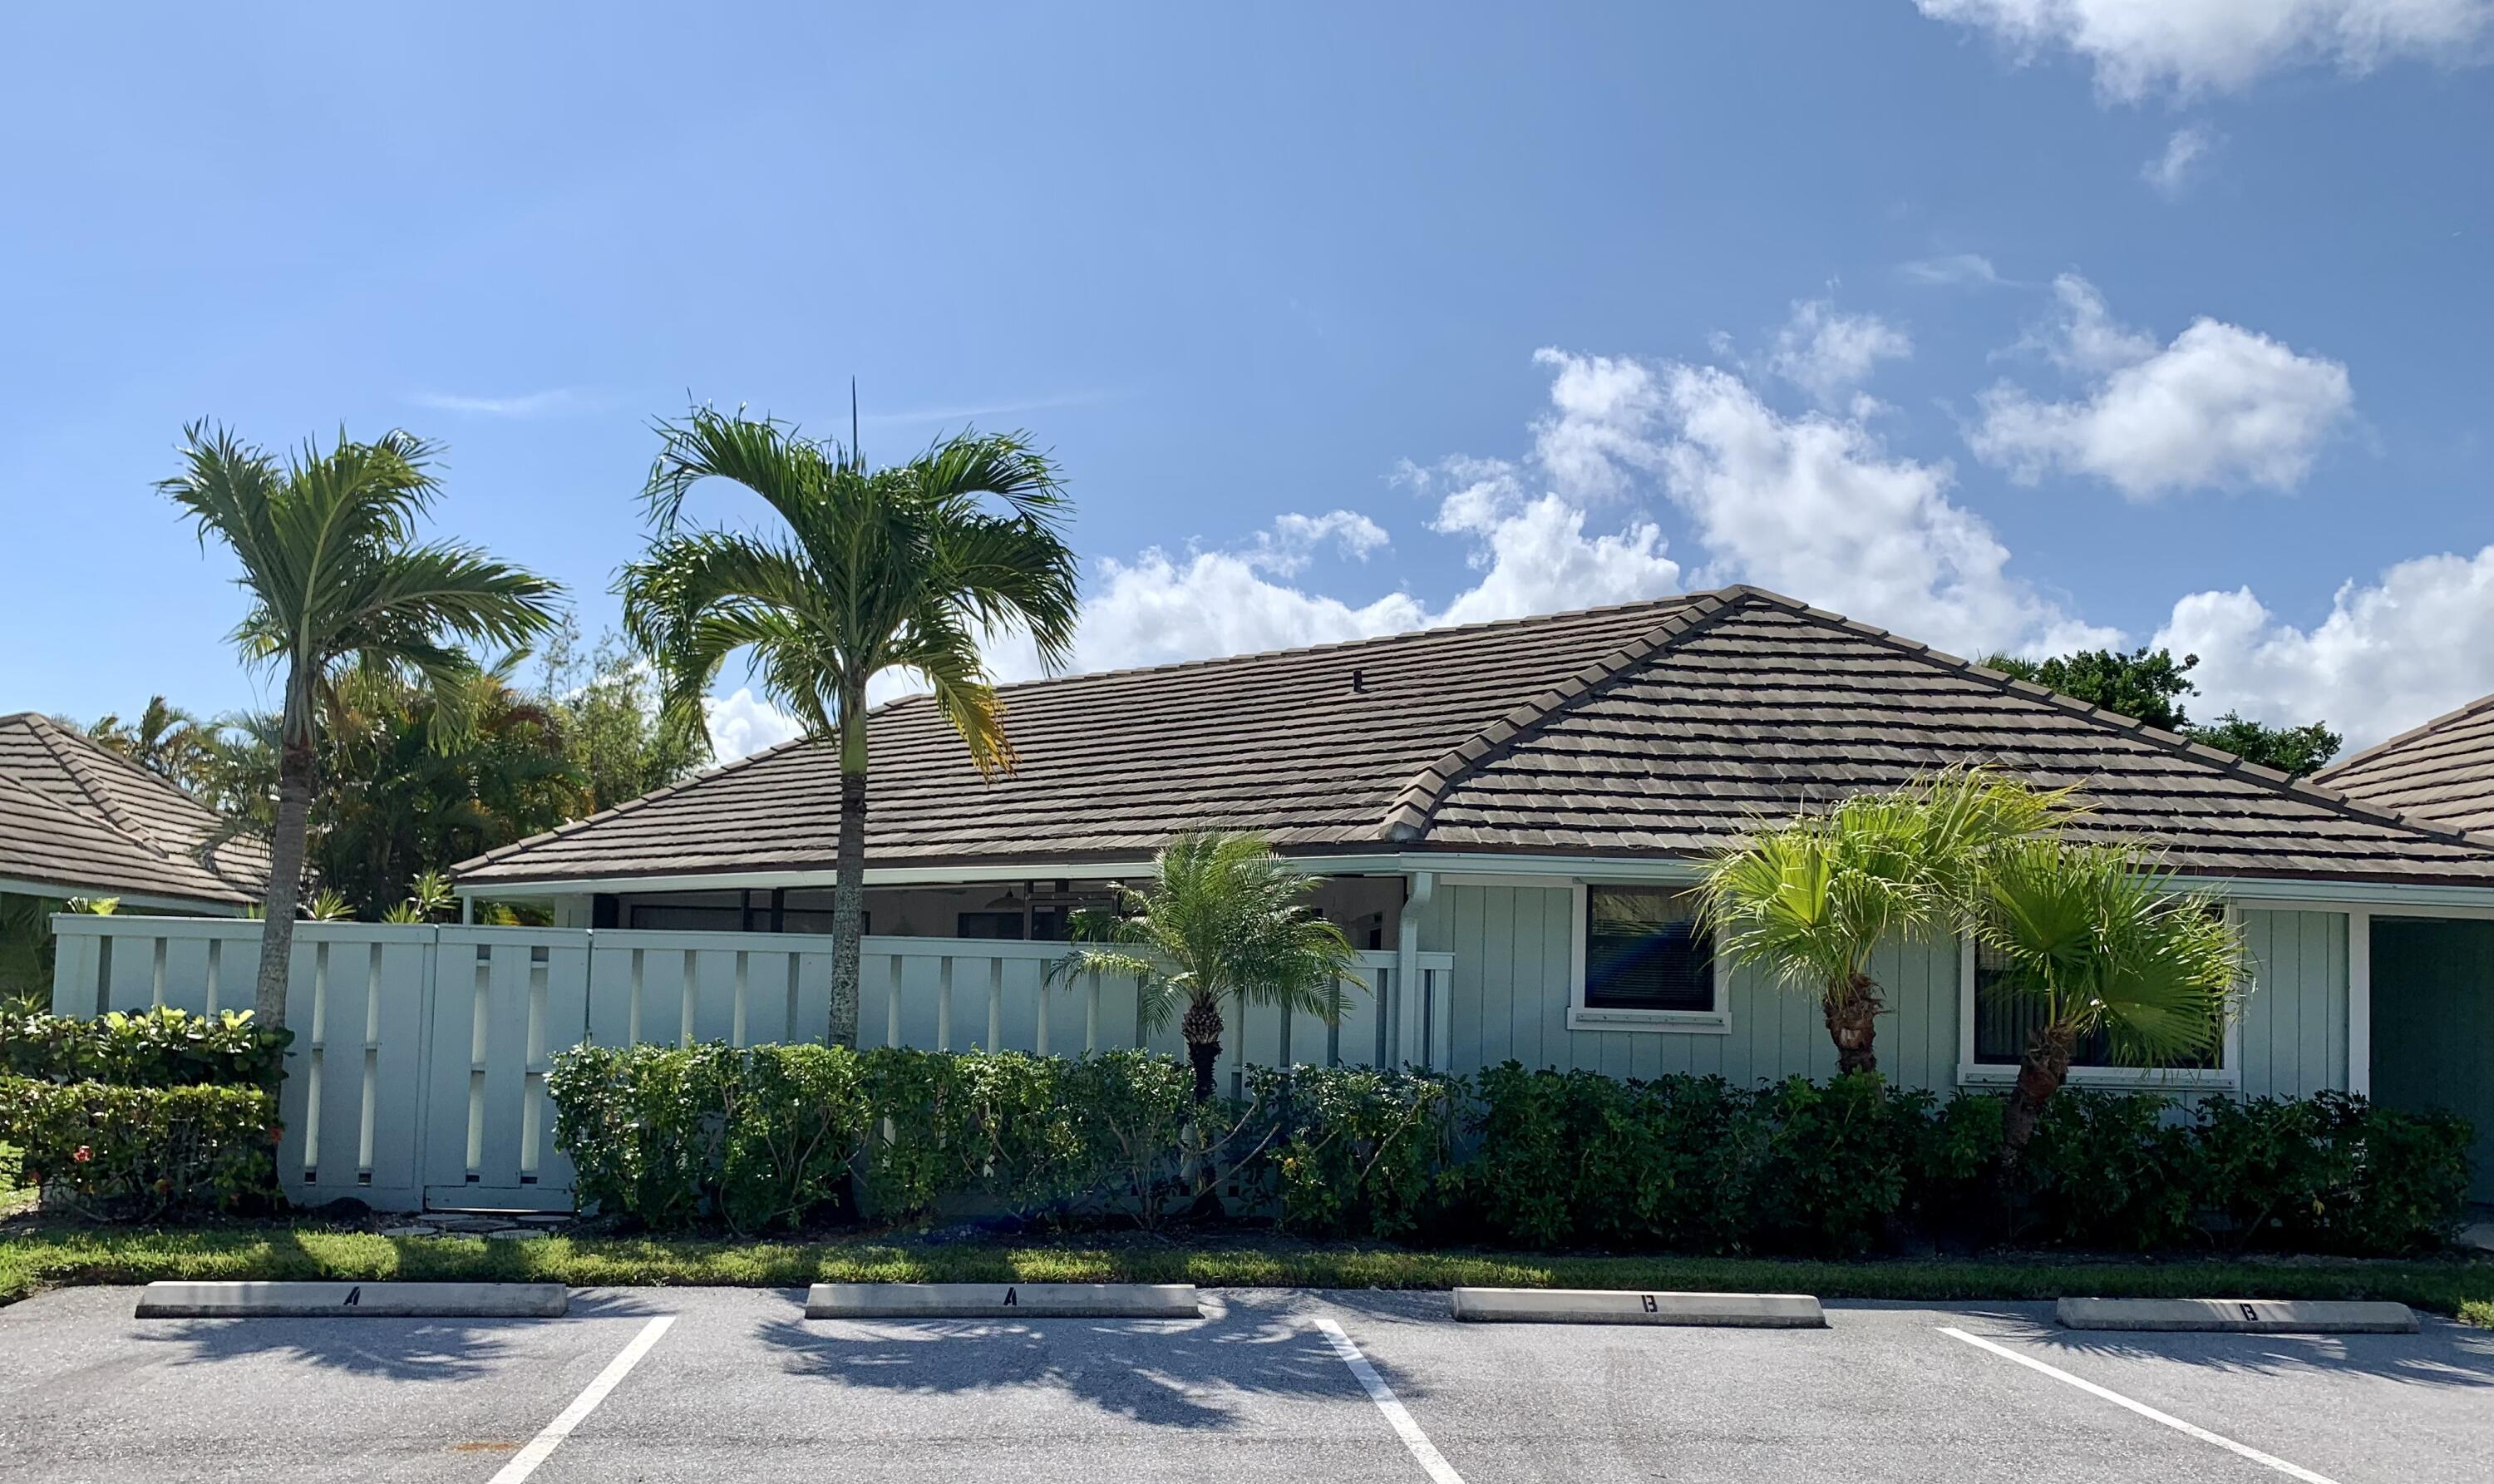 OPEN HOUSE SAT 10/23 12-3pm & SUN 10/24 11-2pm.  Live by the Beach! Gated Community featuring Clubhouse with Pool & Tennis courts.  Master bedroom with walk in closet, Spacious living and dining area for entertaining, private backyard. Enjoy the relaxed atmosphere and park like setting with private trail to beach! One of Jupiter's prime location near the finest amenities all within walking distance, beach, restaurants, shops, cinema, bike paths, Maltz Theater and Harbourside. A true gem!  Roof 2015